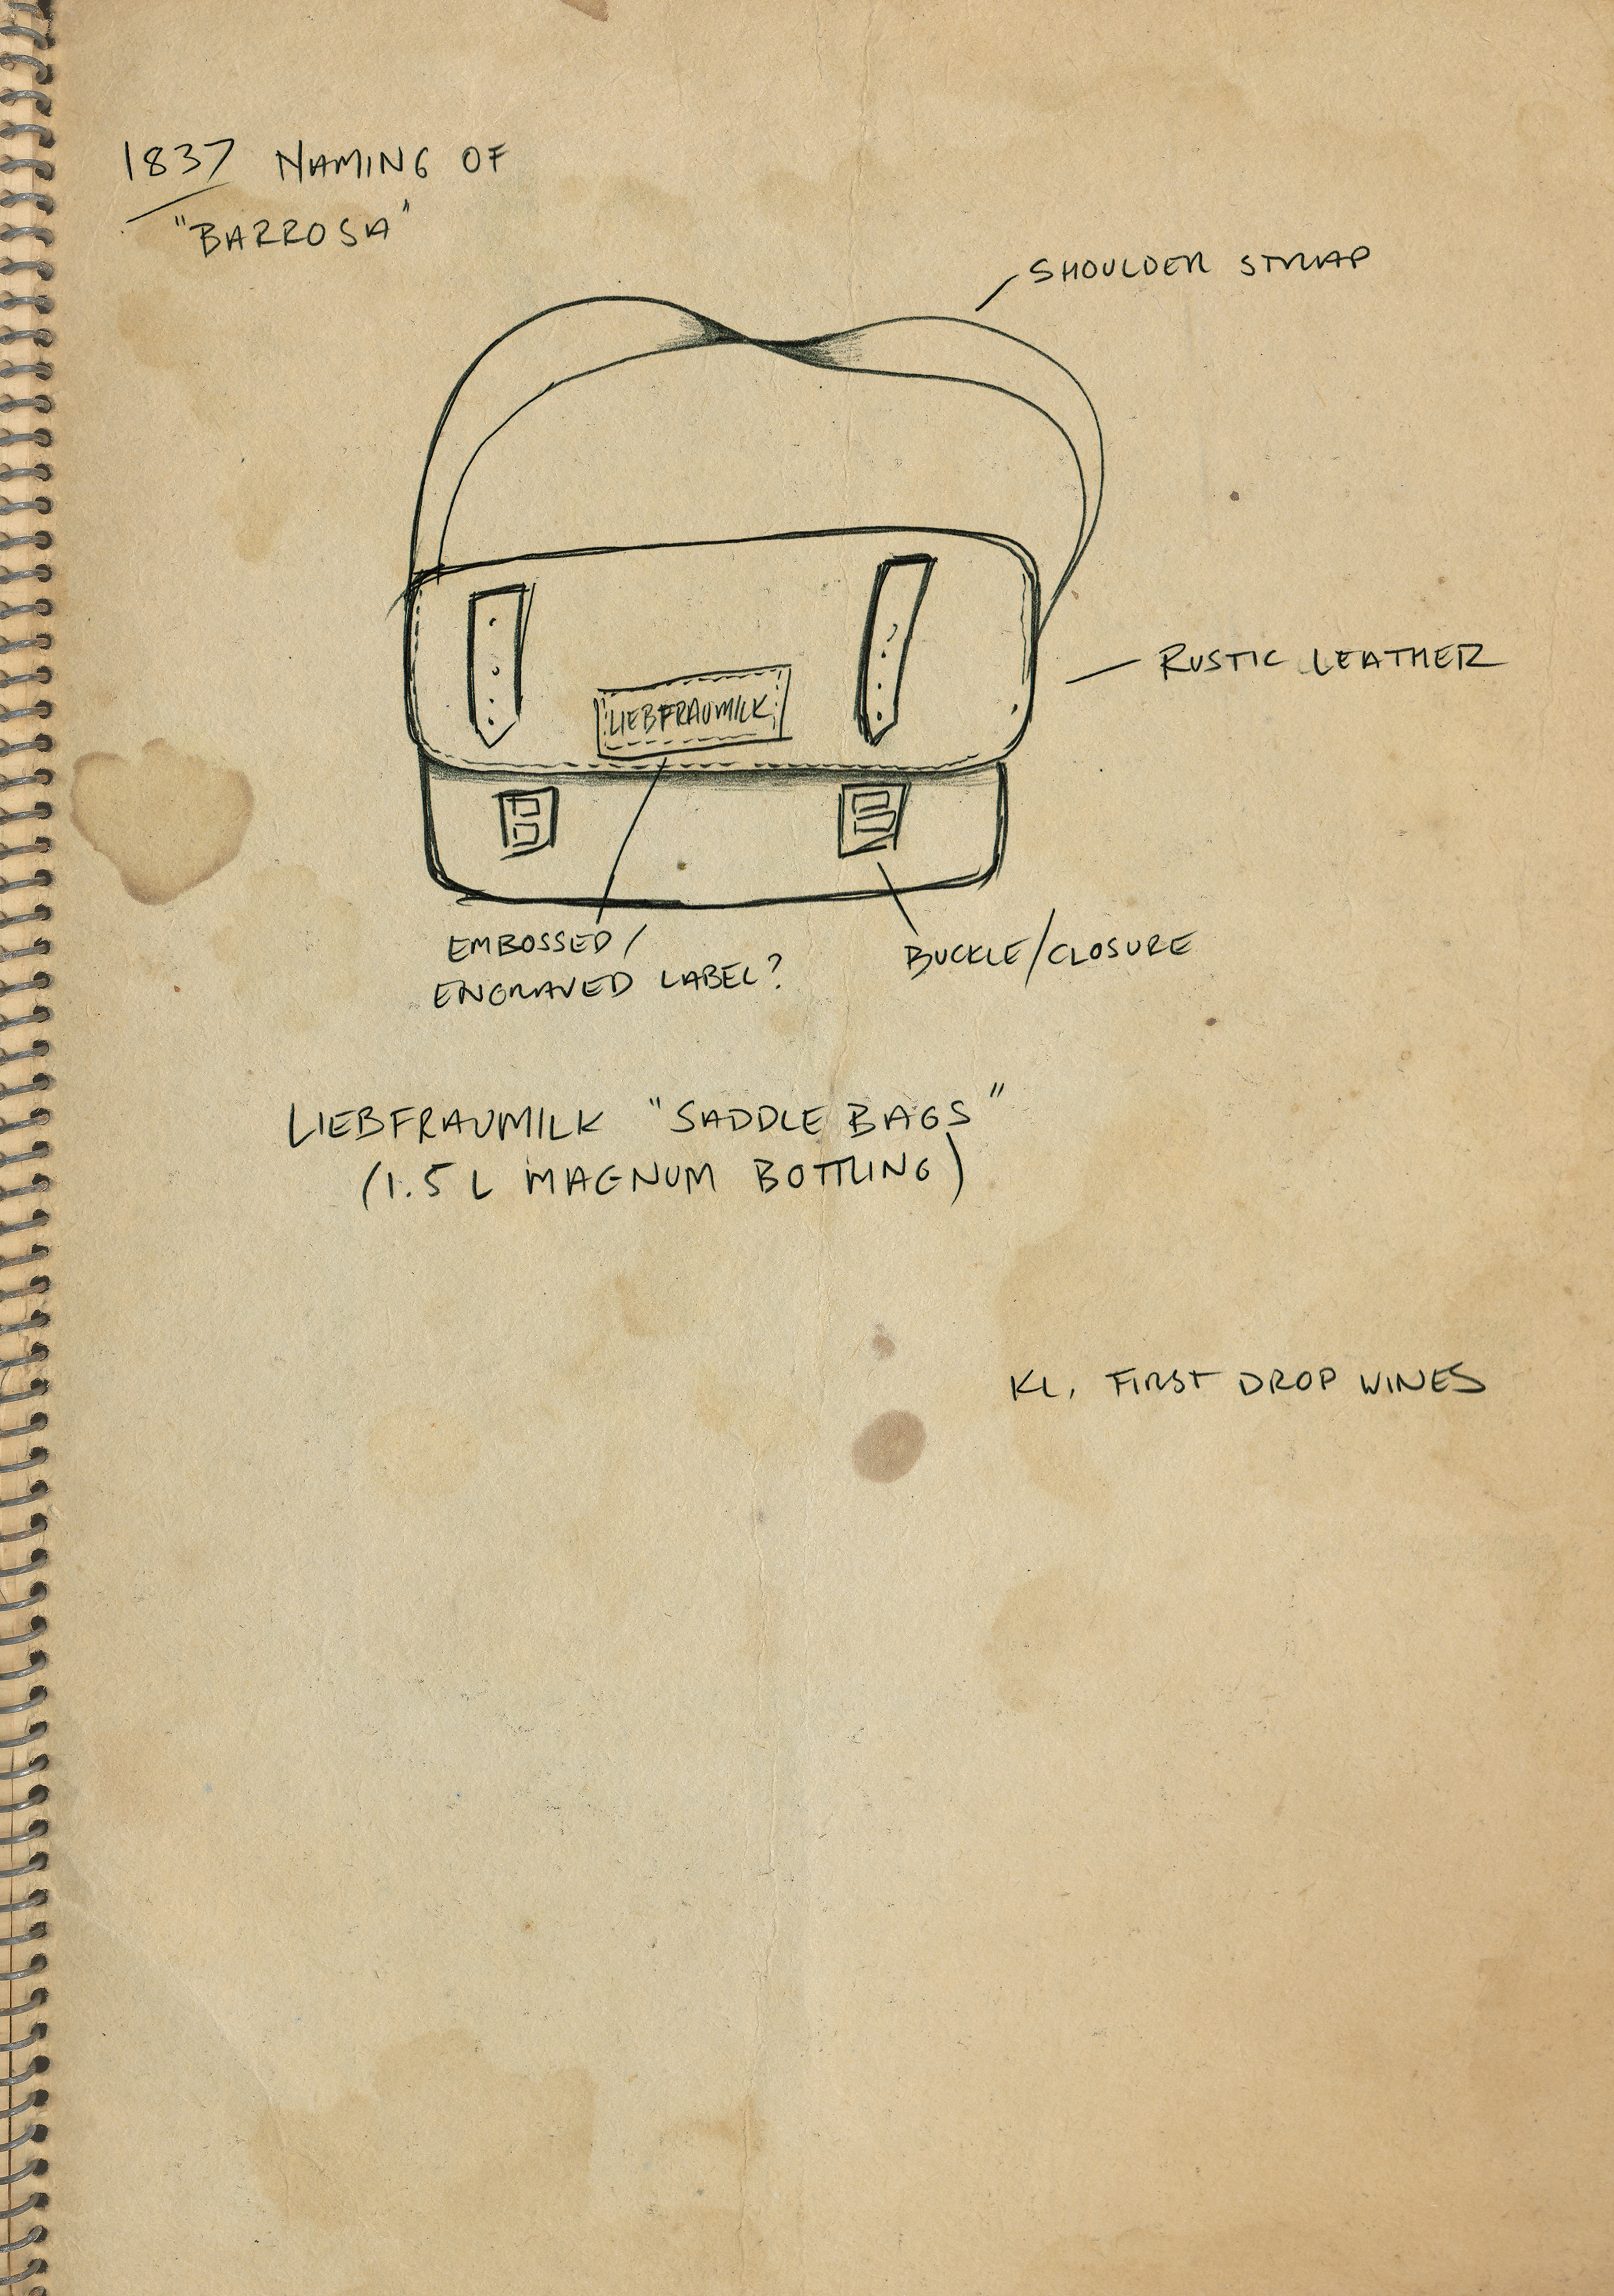 A concept sketch for the Liebfraumilk leather saddlebag